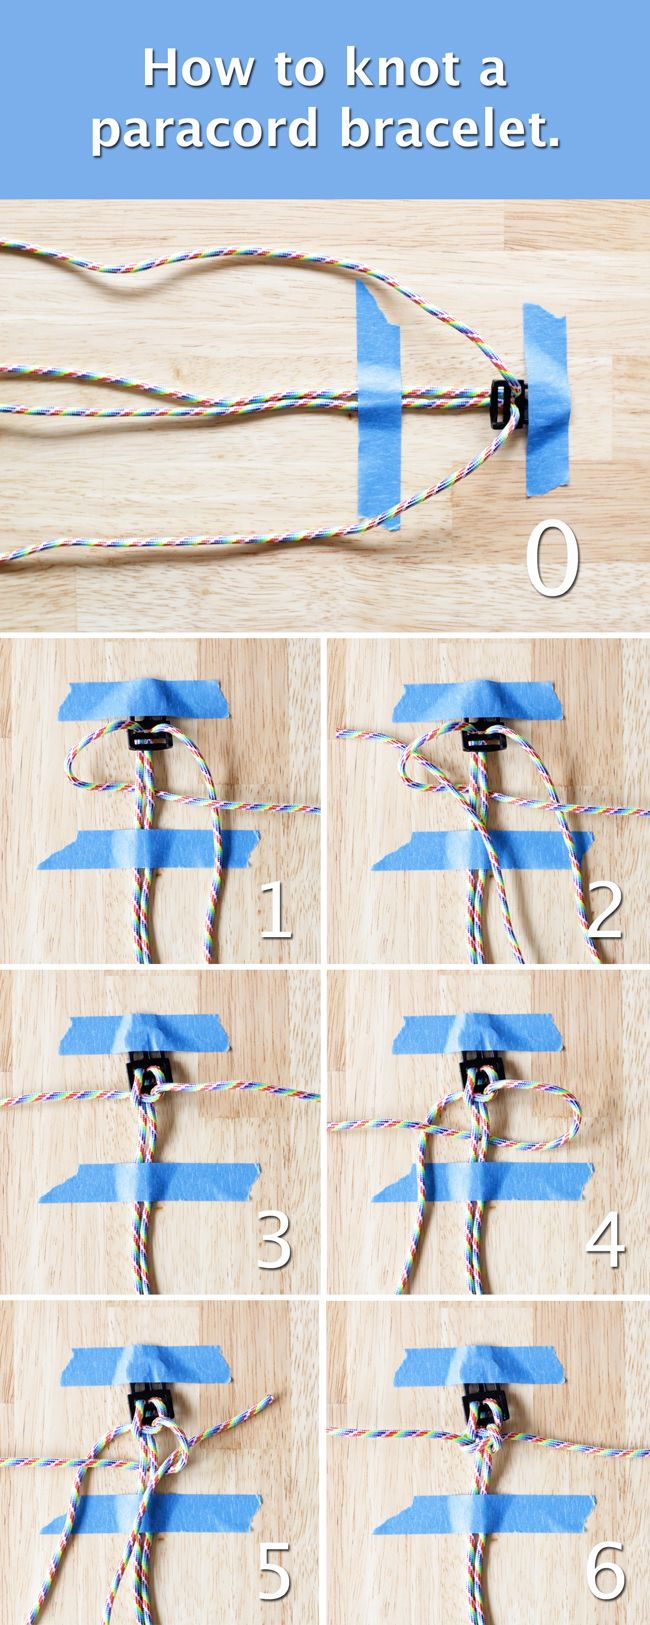 How to knot a paracord bracelet. Tutorial at HandsOccupied.com.